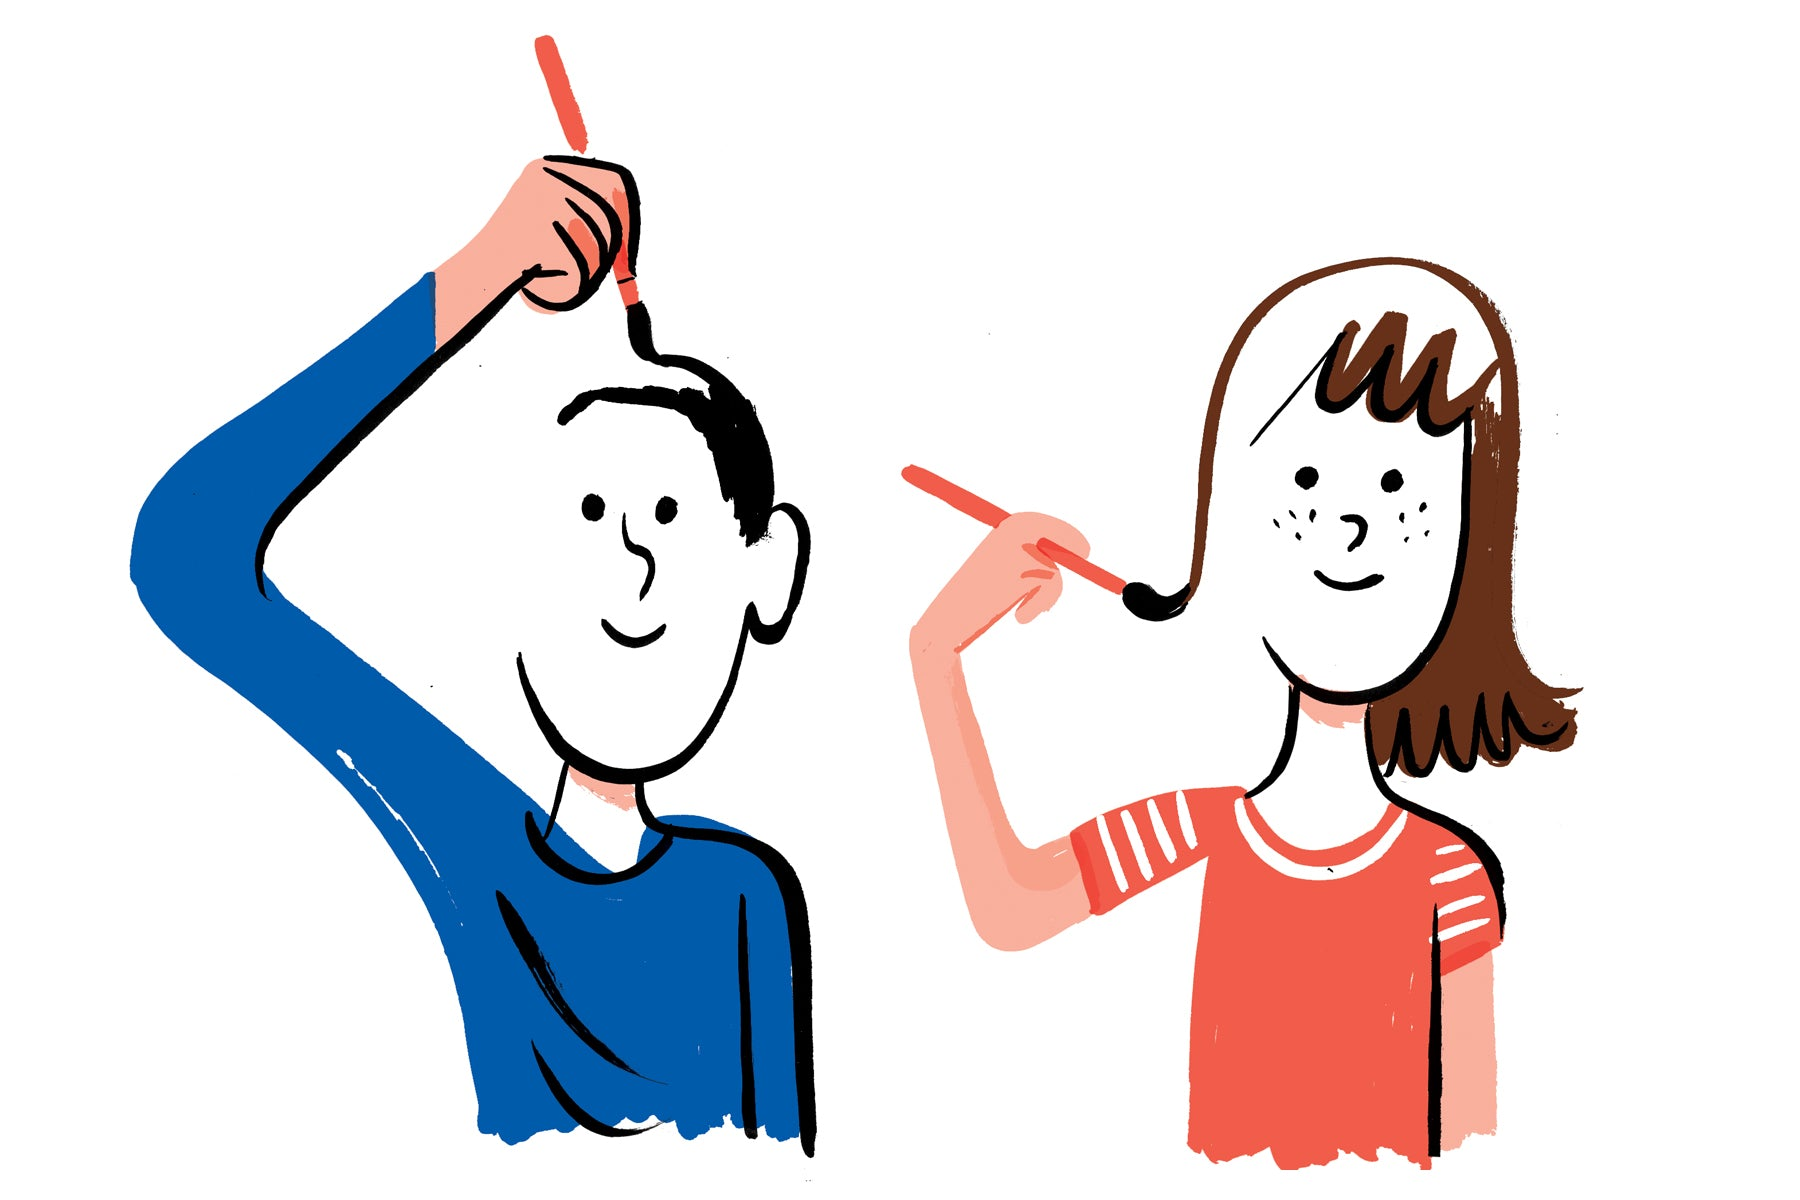 Illustration of a young boy with a blue shirt on and a young girl with a red shirt on drawing their own faces so half of their face is incomplete as they paint in the details themselves. This is a metaphor for introducing themselves.